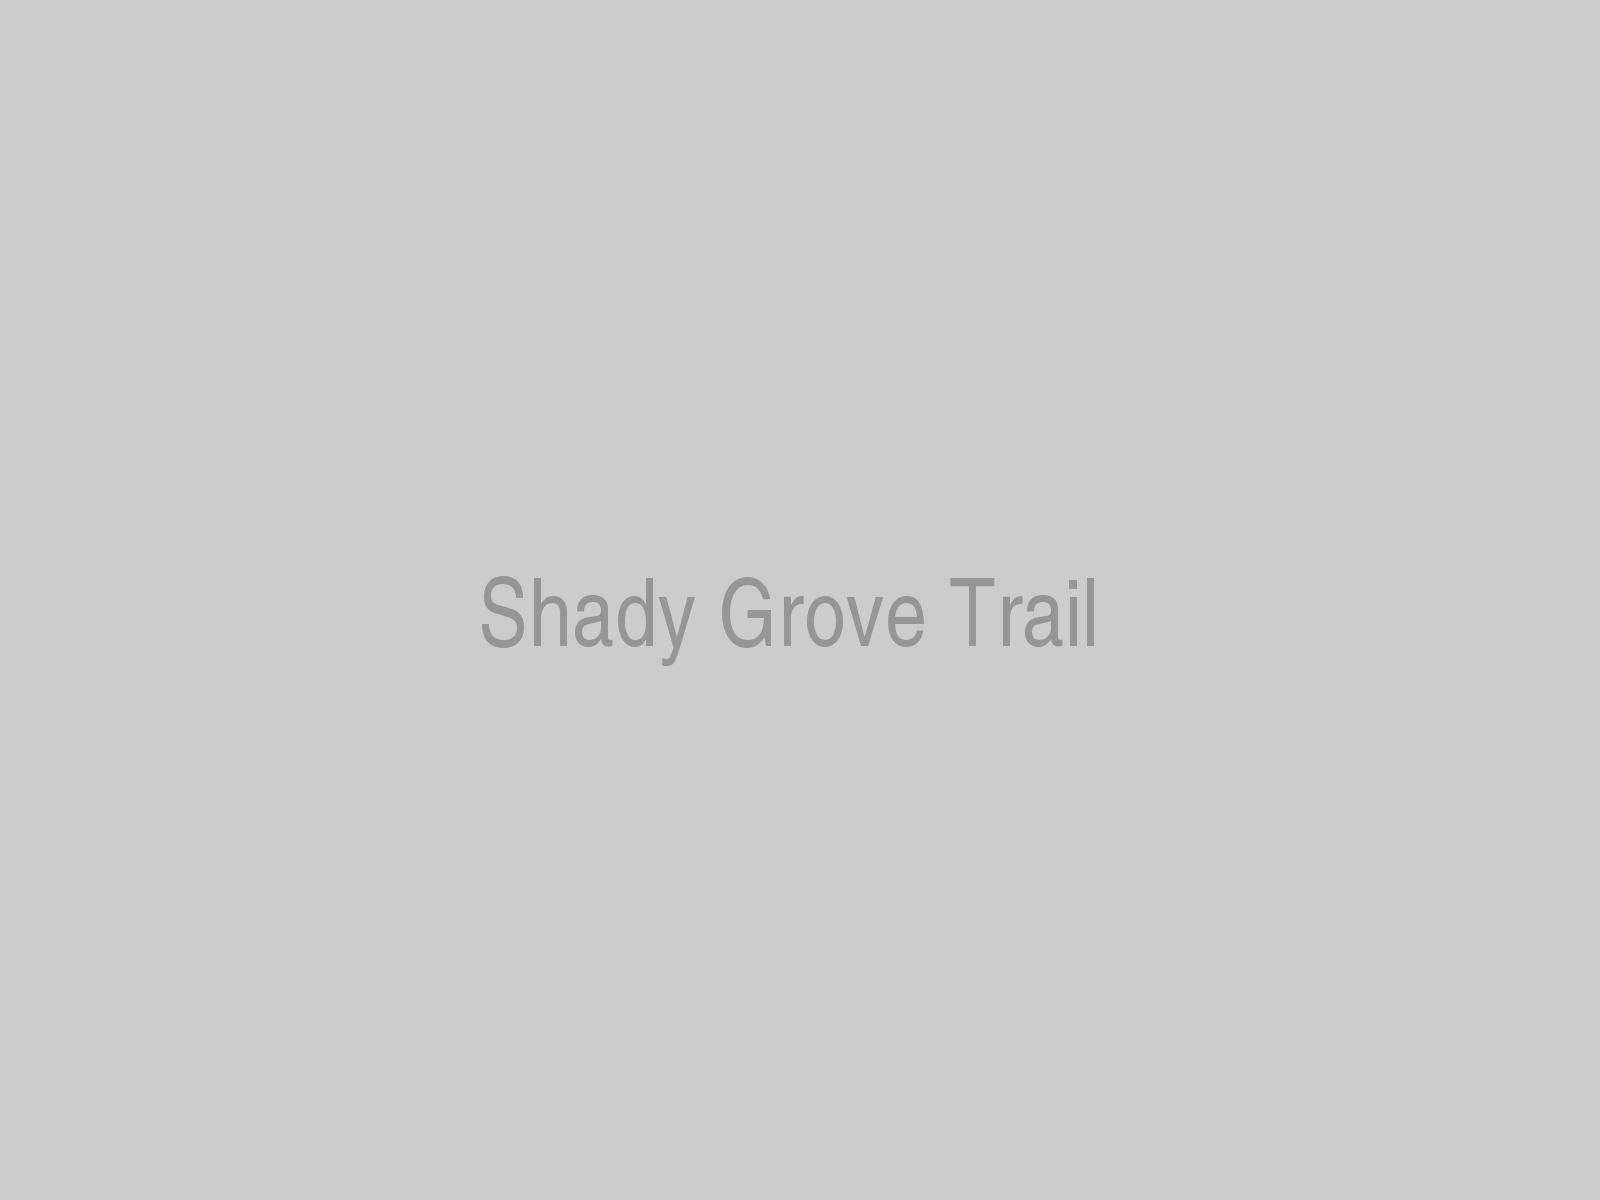 Shady Grove Trail